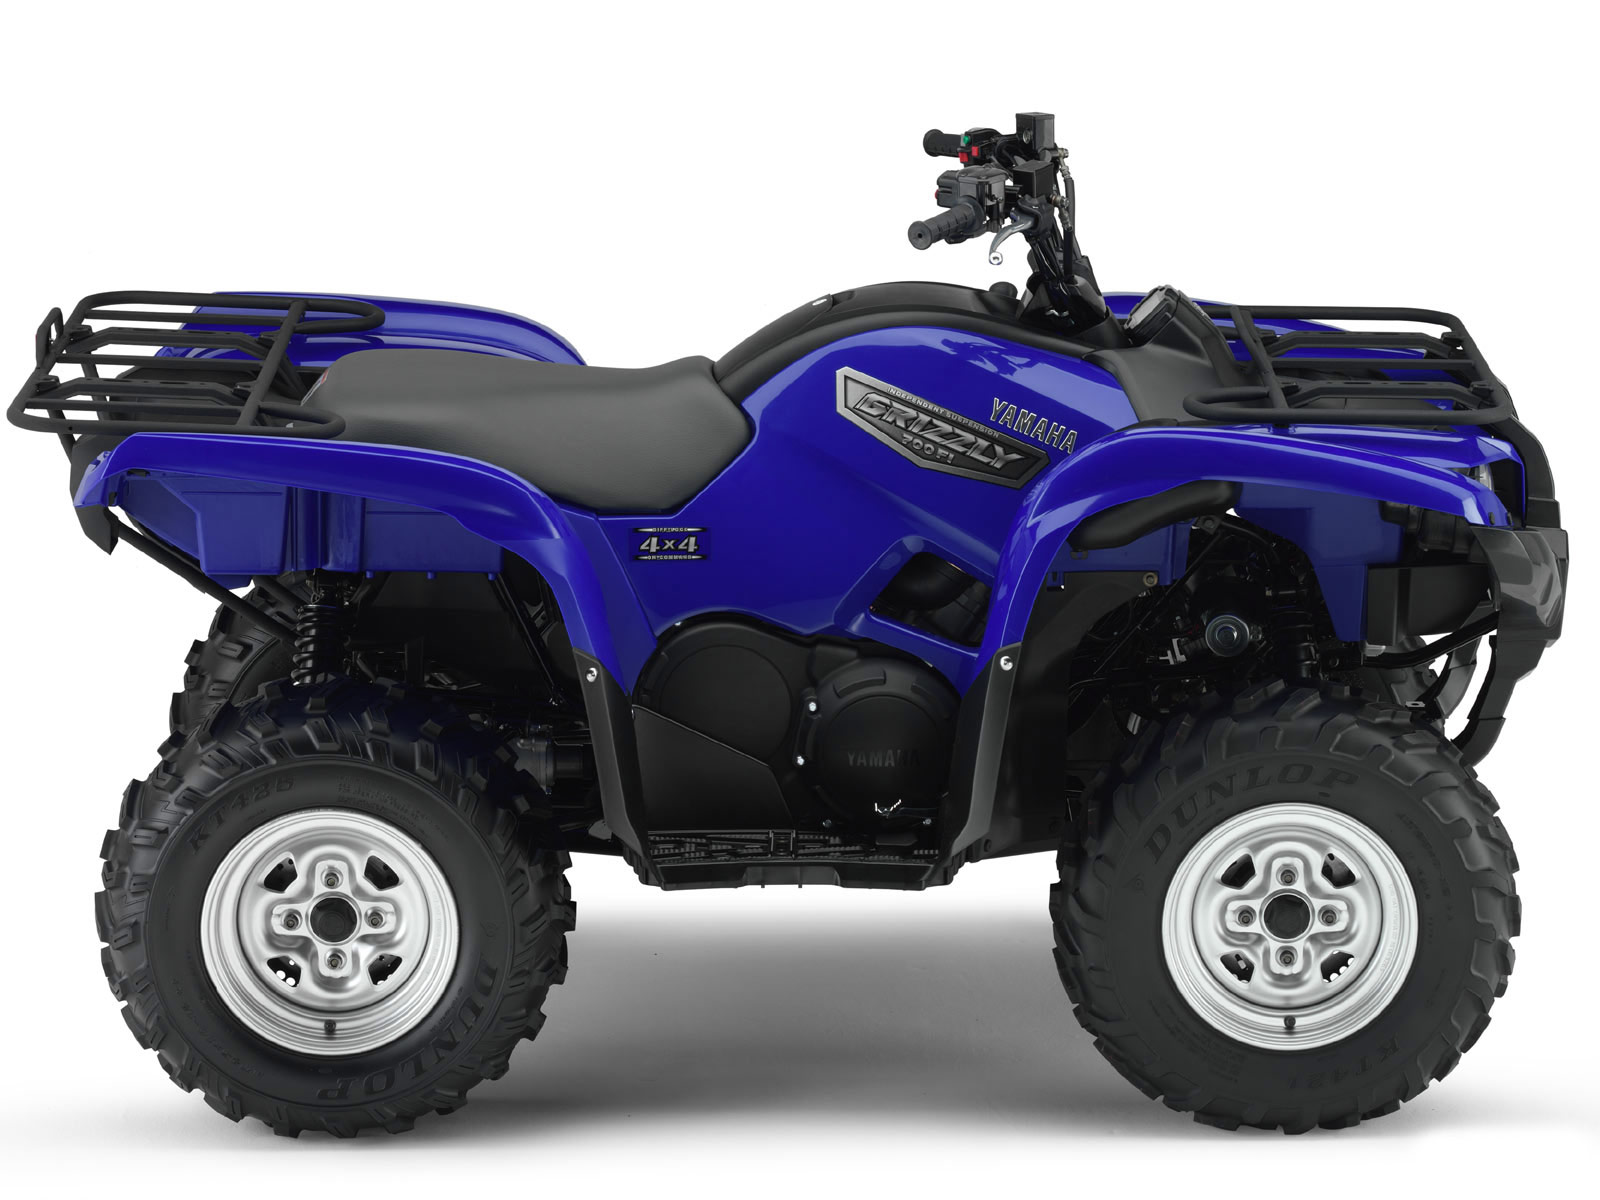 grizzly 700 fi 4x4 automotic 2007 yamaha atv pictures specs